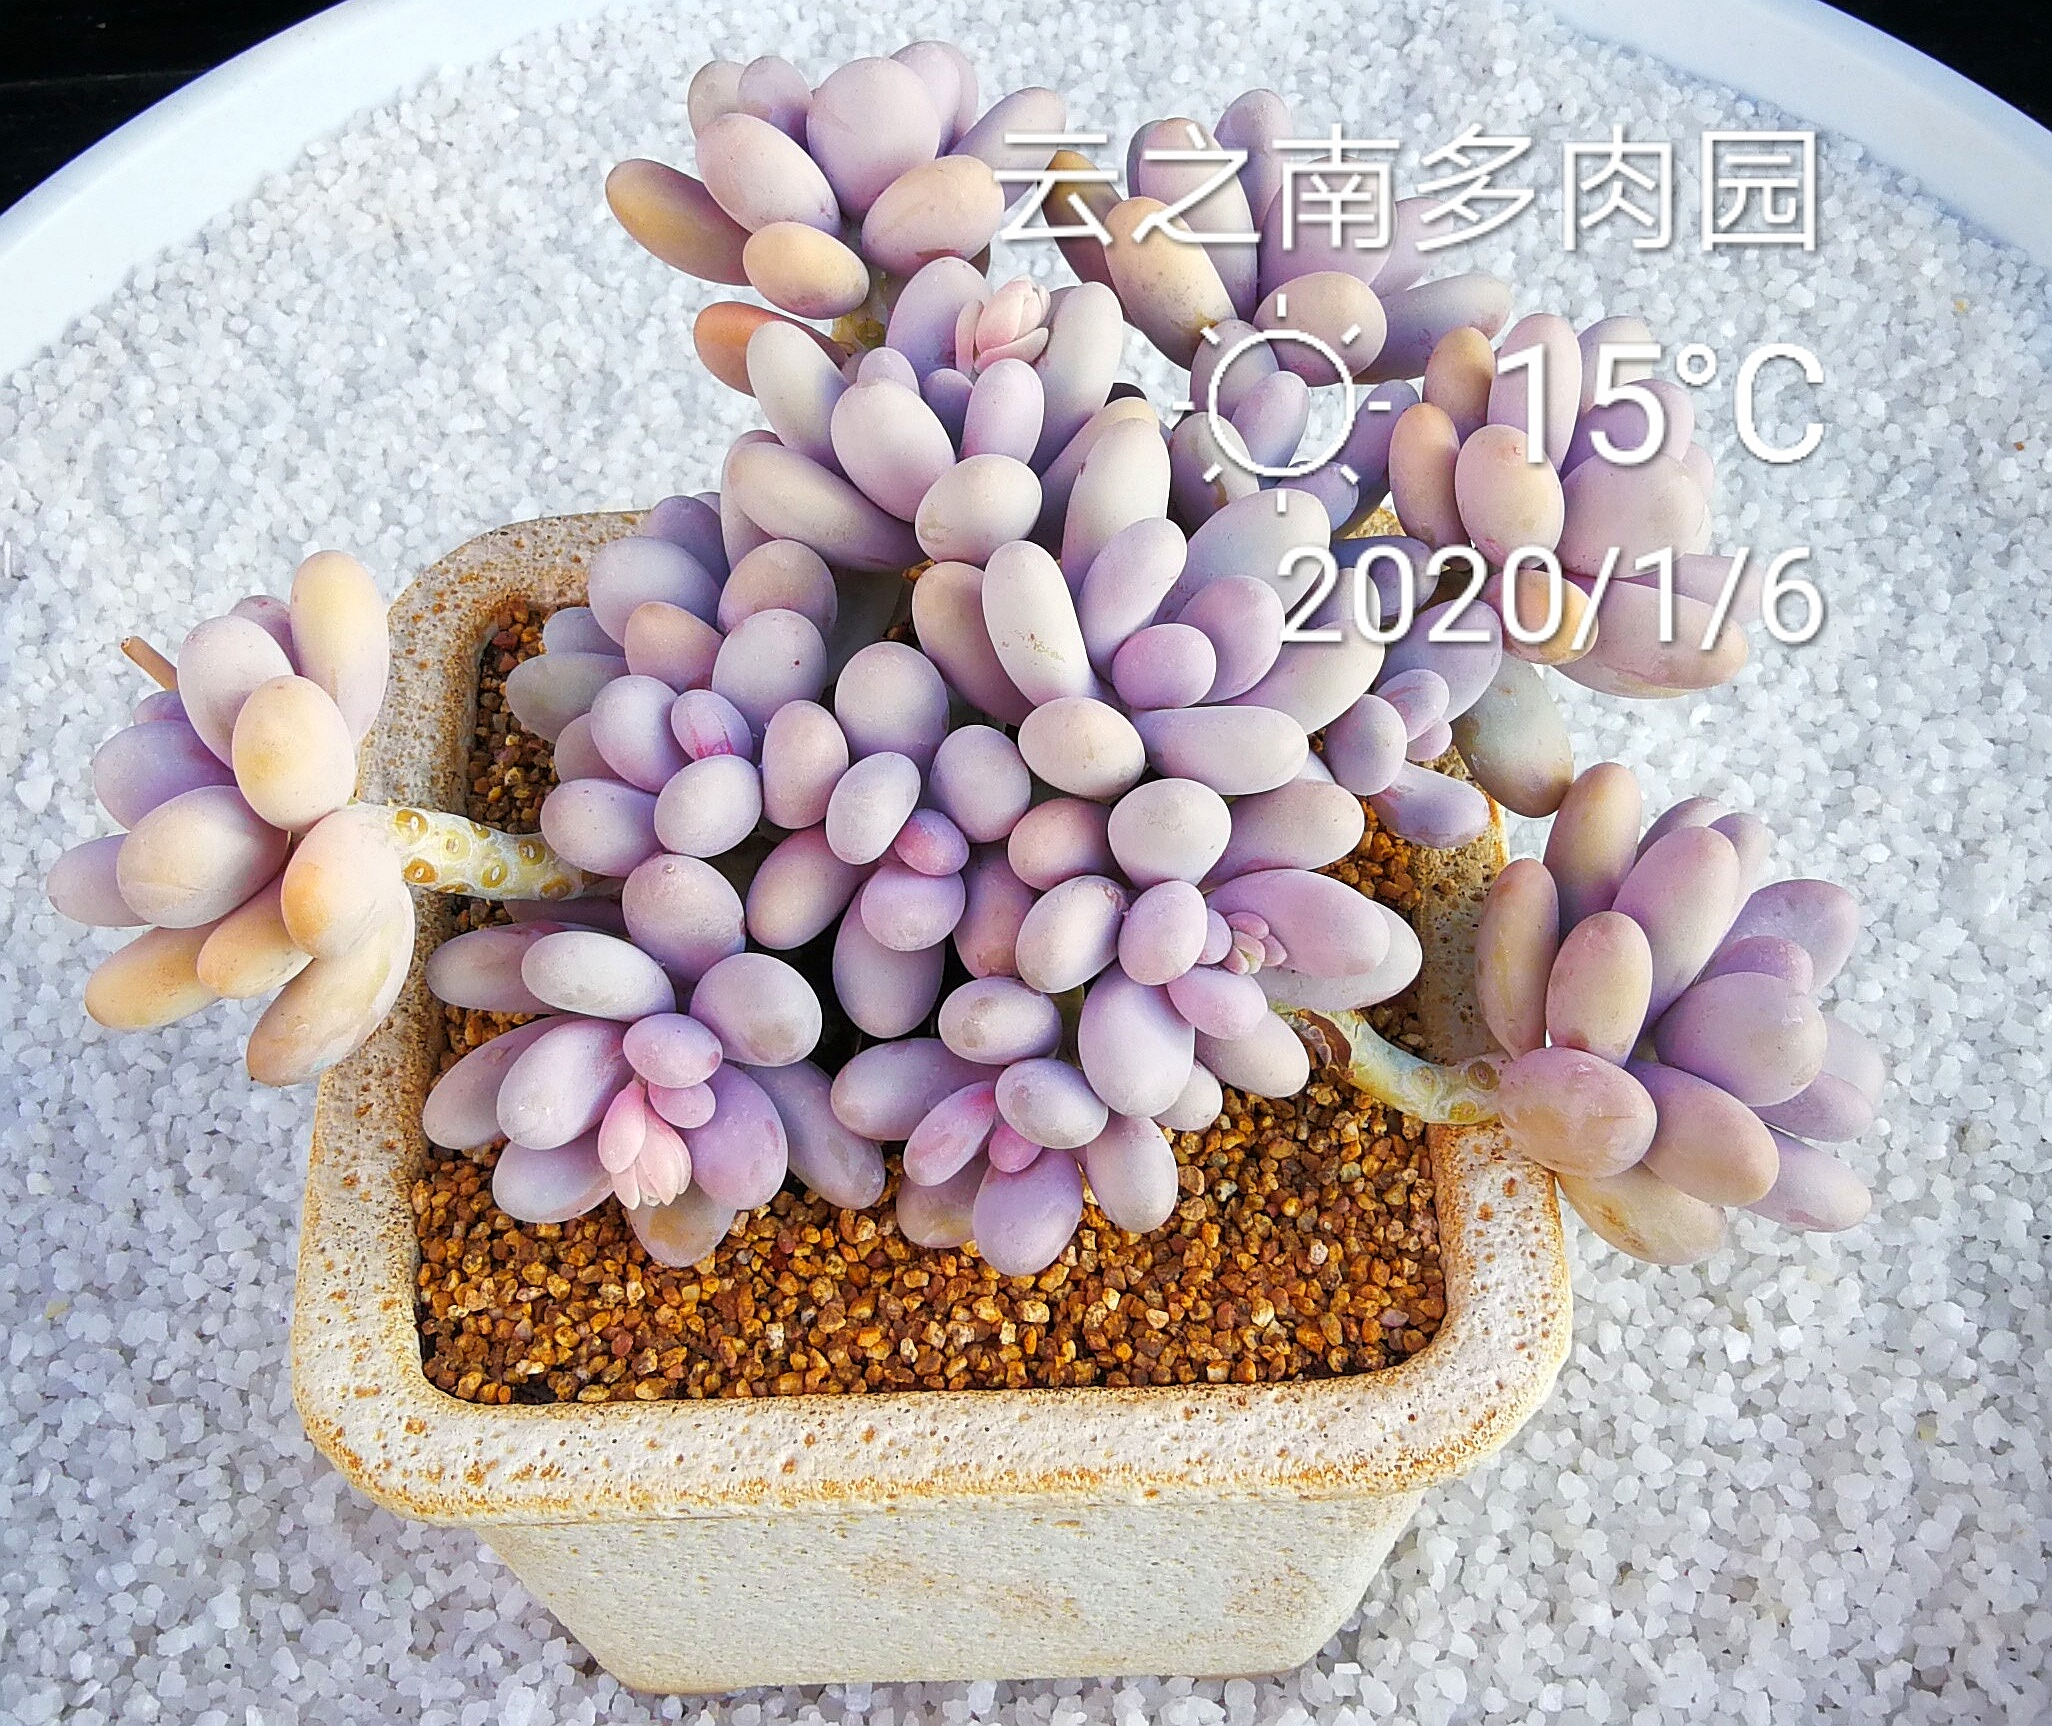 Original cheese vinston egg yolk milk succulent plant sprouting big plant potted New Years goods Festival South meat Garden